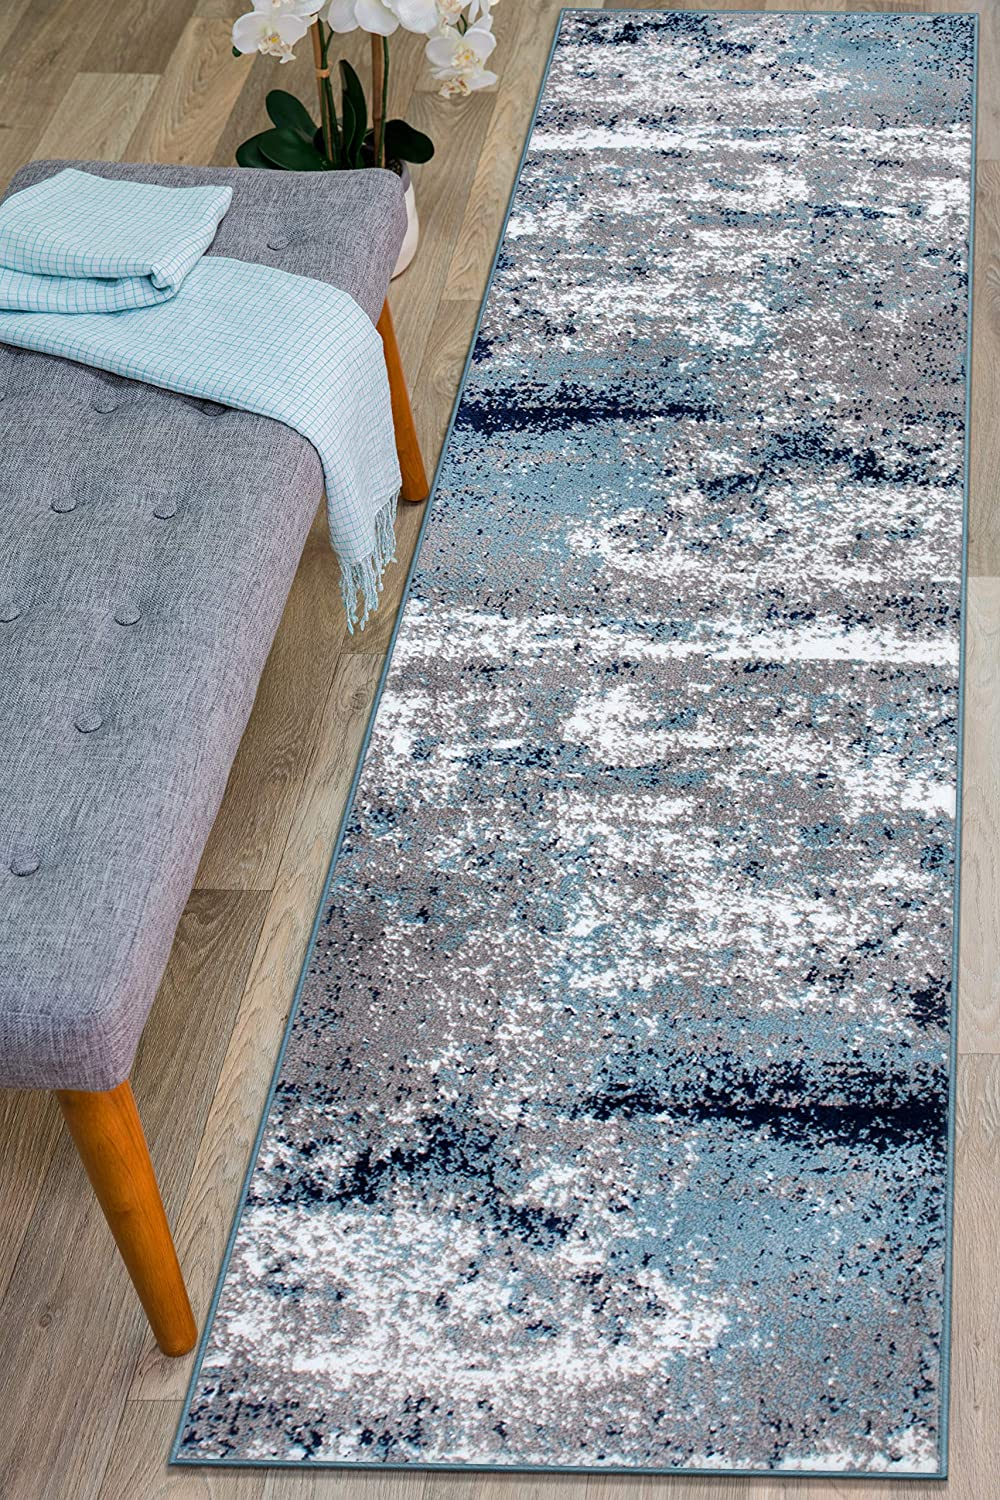 Free Award shipping on posting reviews Rugshop Distressed Abstract Watercolor Runner 2' Rug Blue x 7'